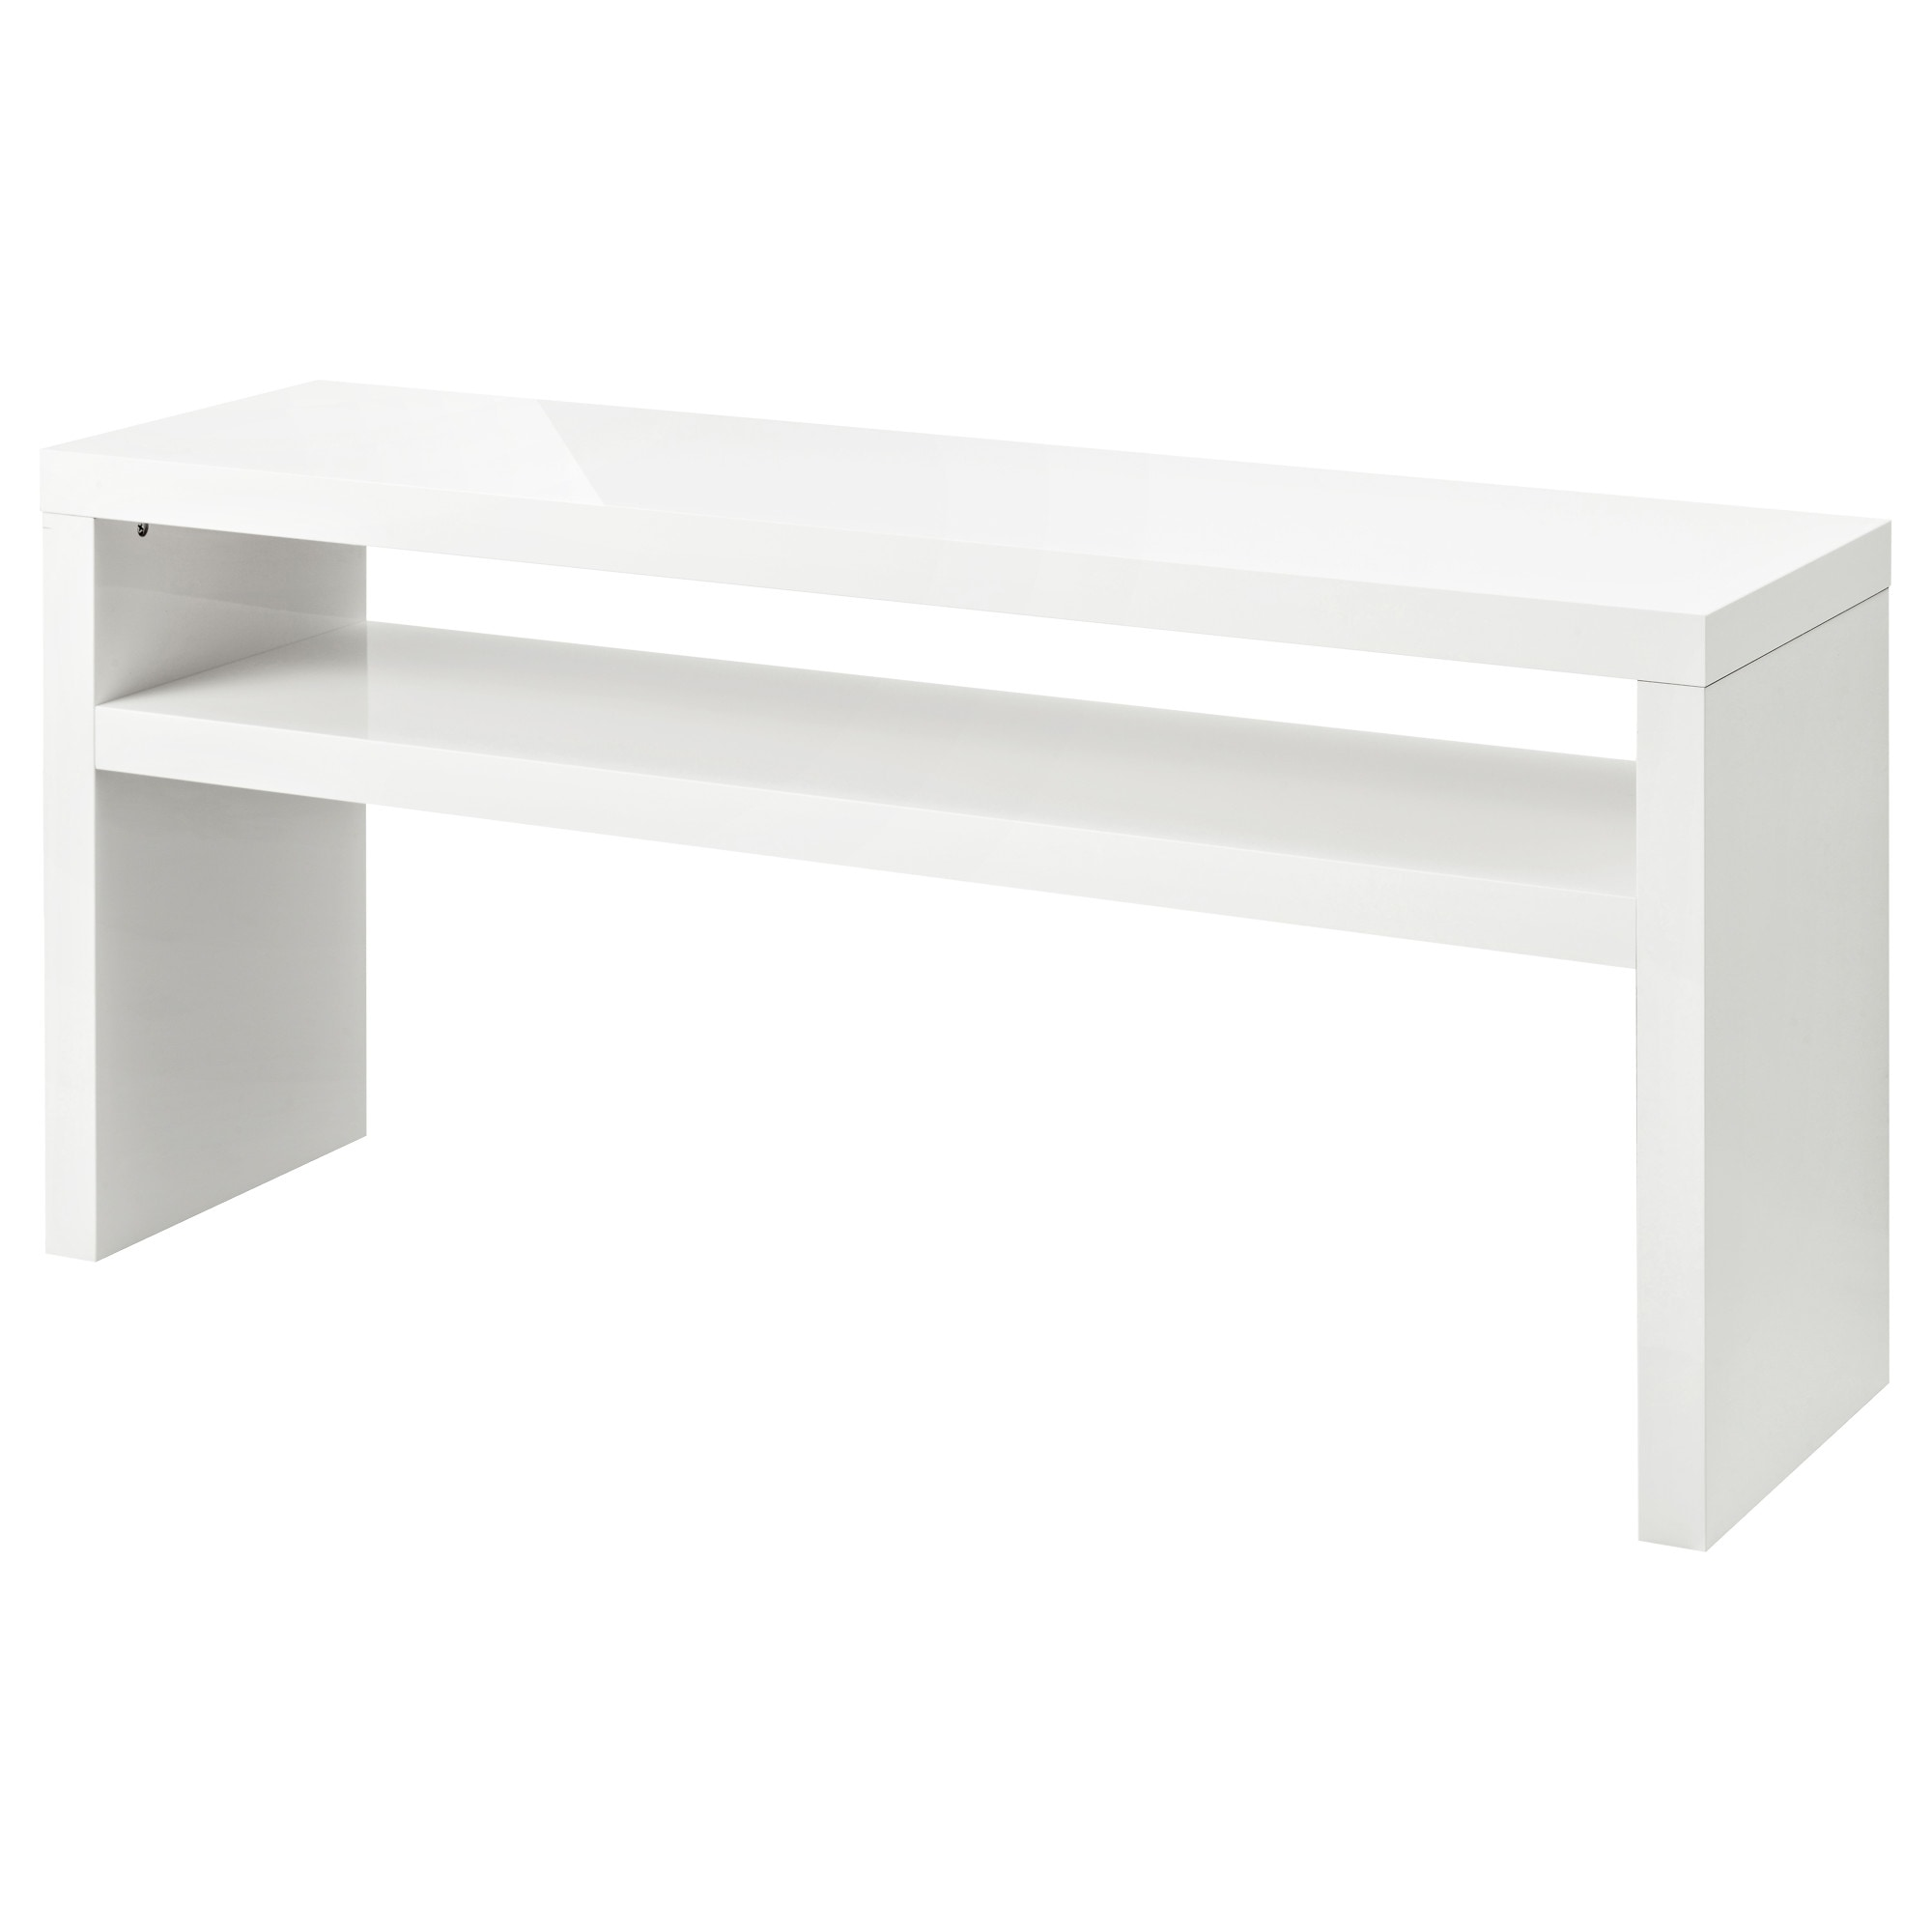 Table console chez ikea for Consolle mercatone uno